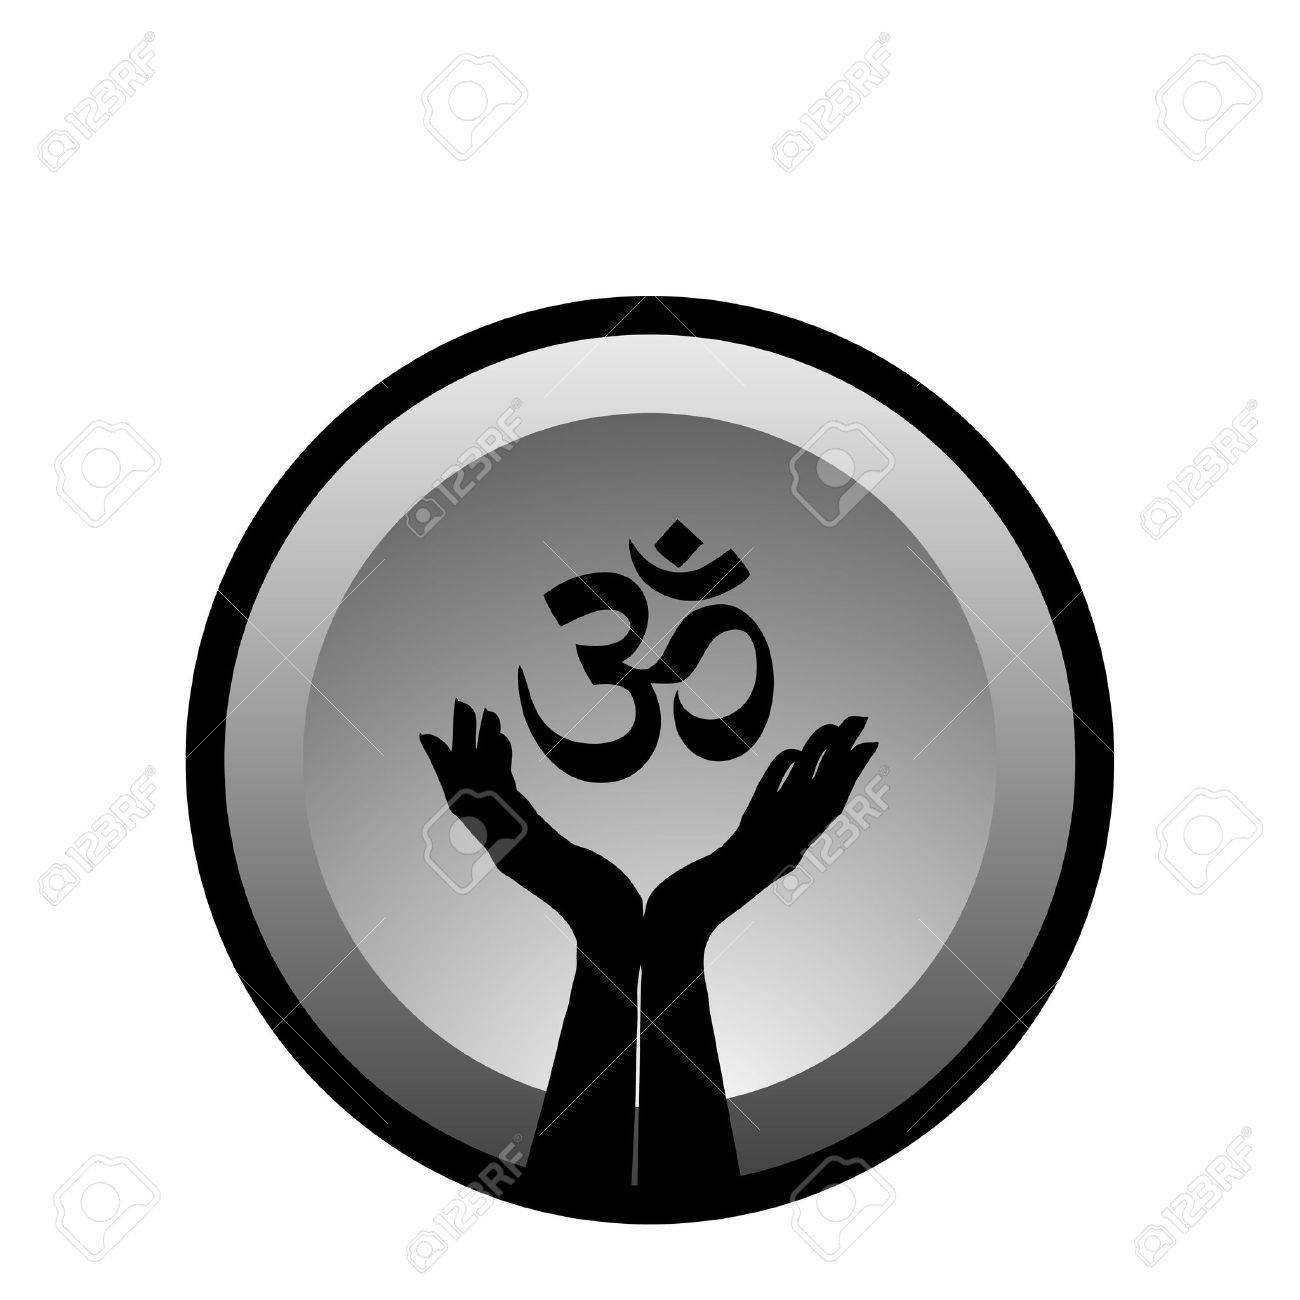 Hinduism religion symbol images symbol and sign ideas hinduism religion symbol images symbol and sign ideas hinduism religion symbol buycottarizona images buycottarizona images buycottarizona Image collections